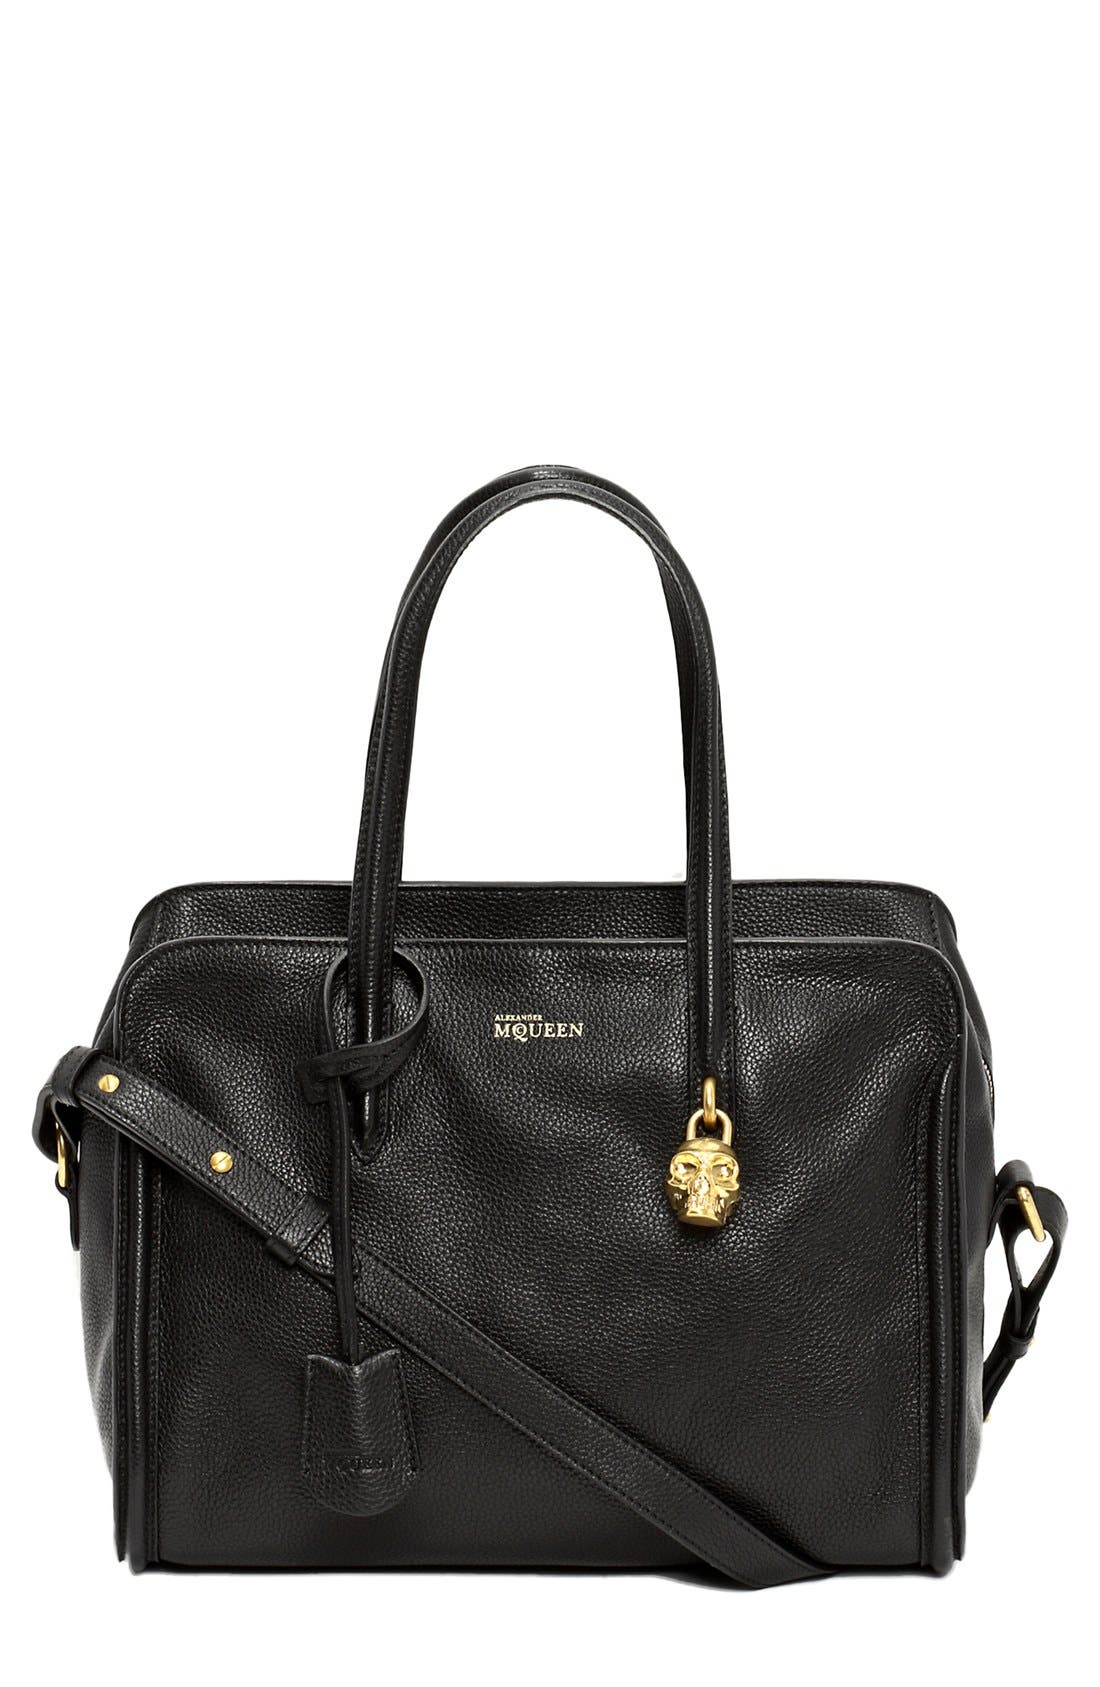 Alternate Image 1 Selected - Alexander McQueen 'Padlock - Small' Calfskin Duffel Bag